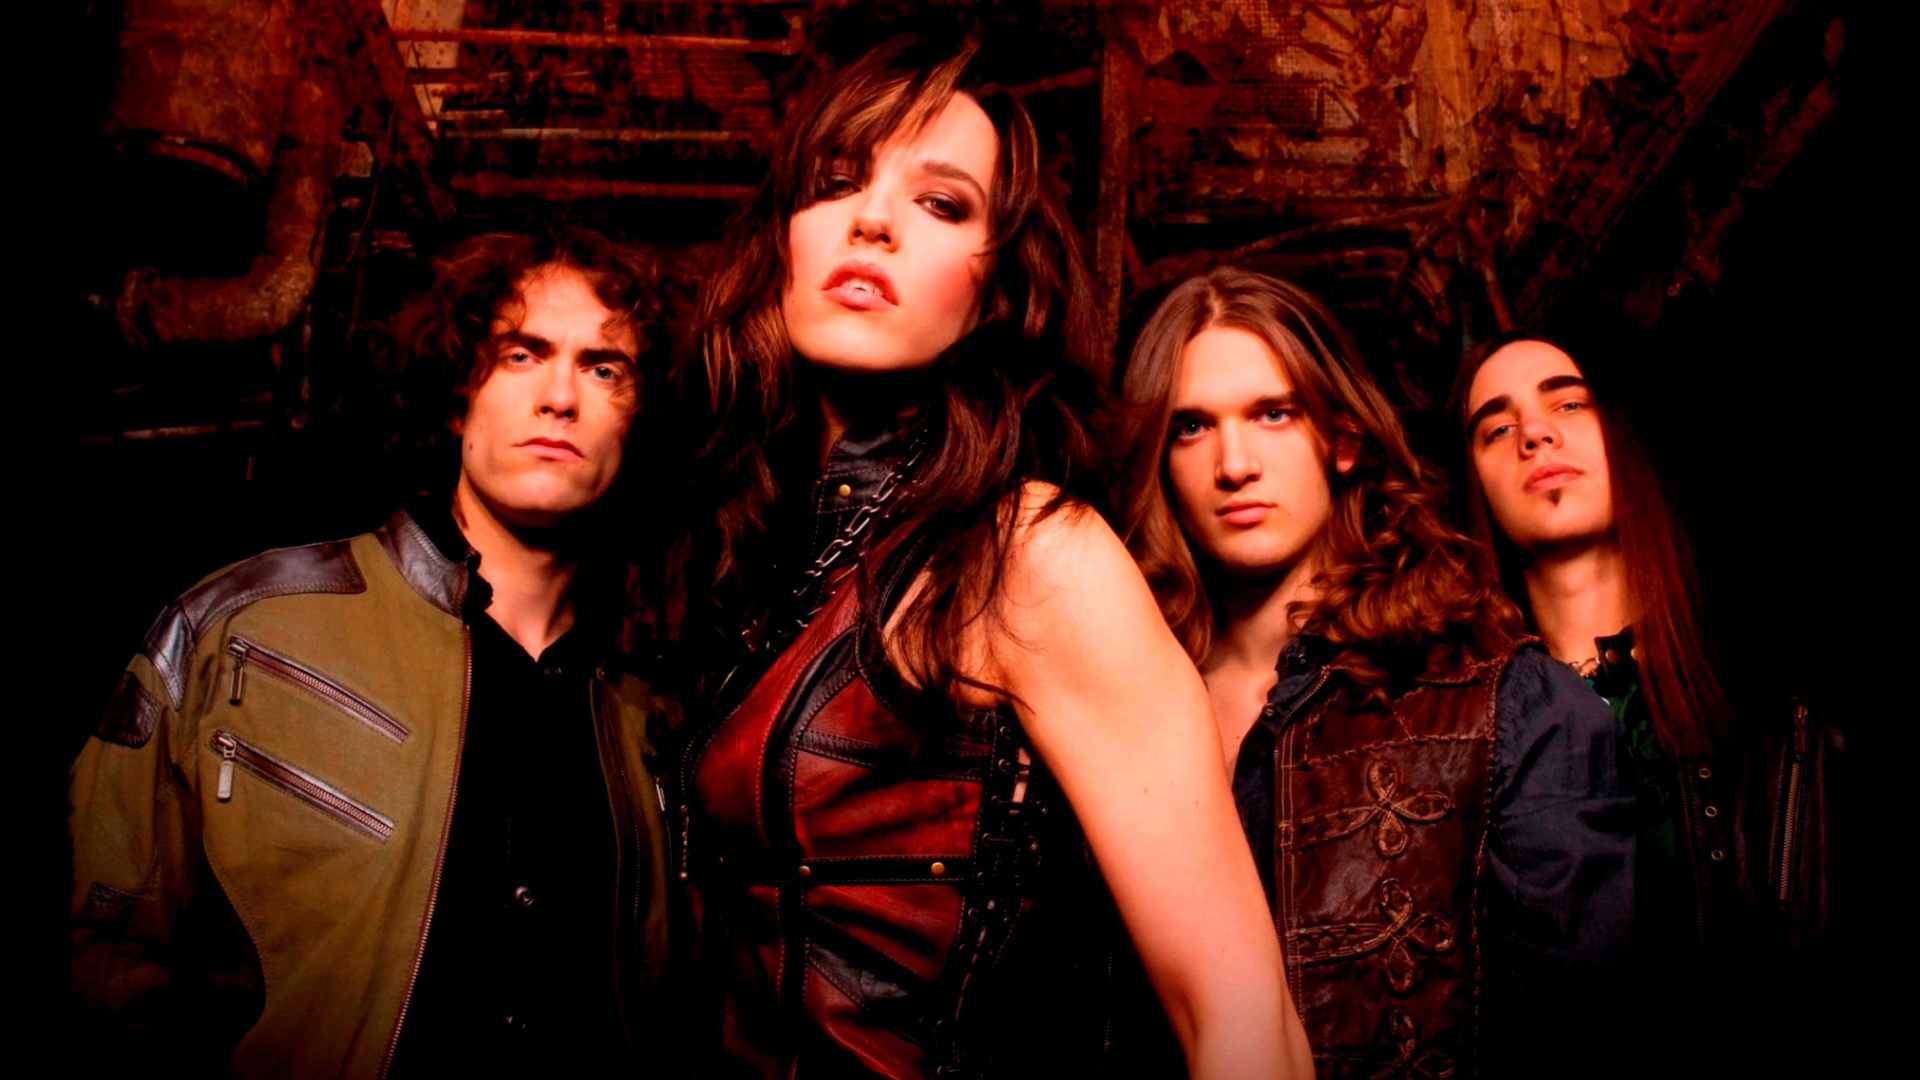 Halestorm wallpaper   Lzzy Hale Wallpaper 37171998 1920x1080